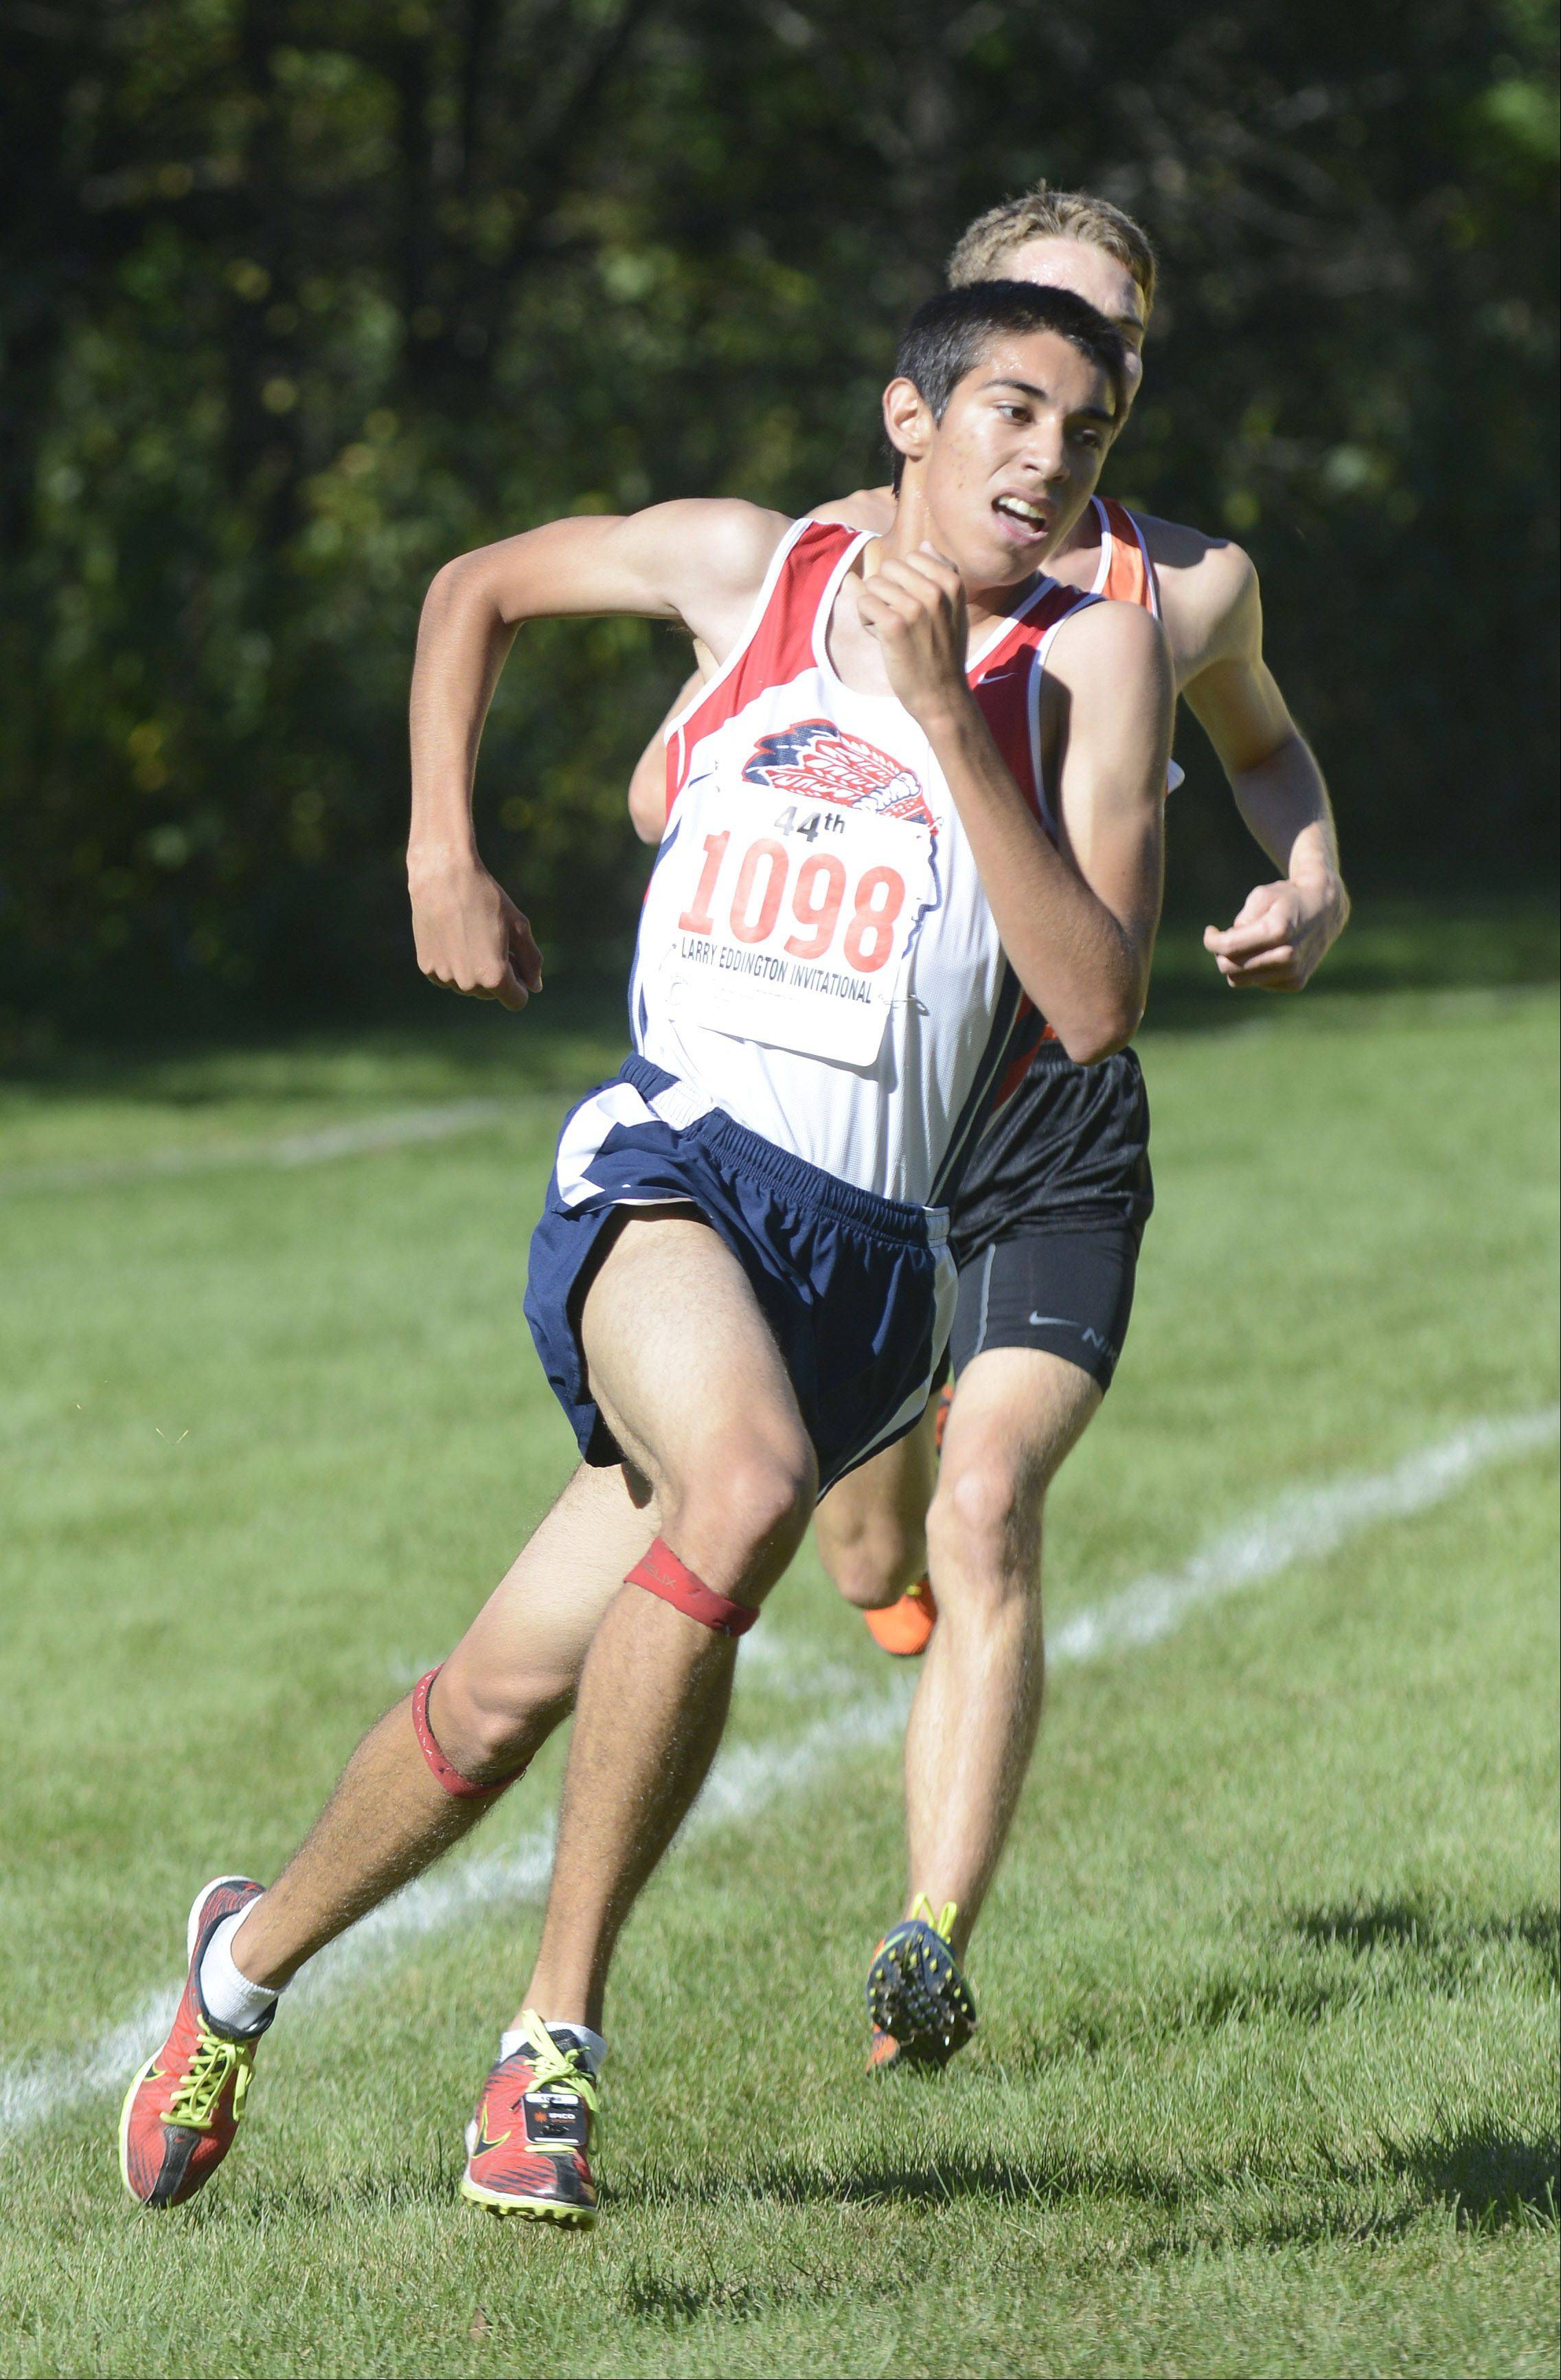 West Aurora's Joe Chavez sprints past Kaneland's Ryan Bower during Saturday's Kaneland Invitational cross country meet in Elburn.